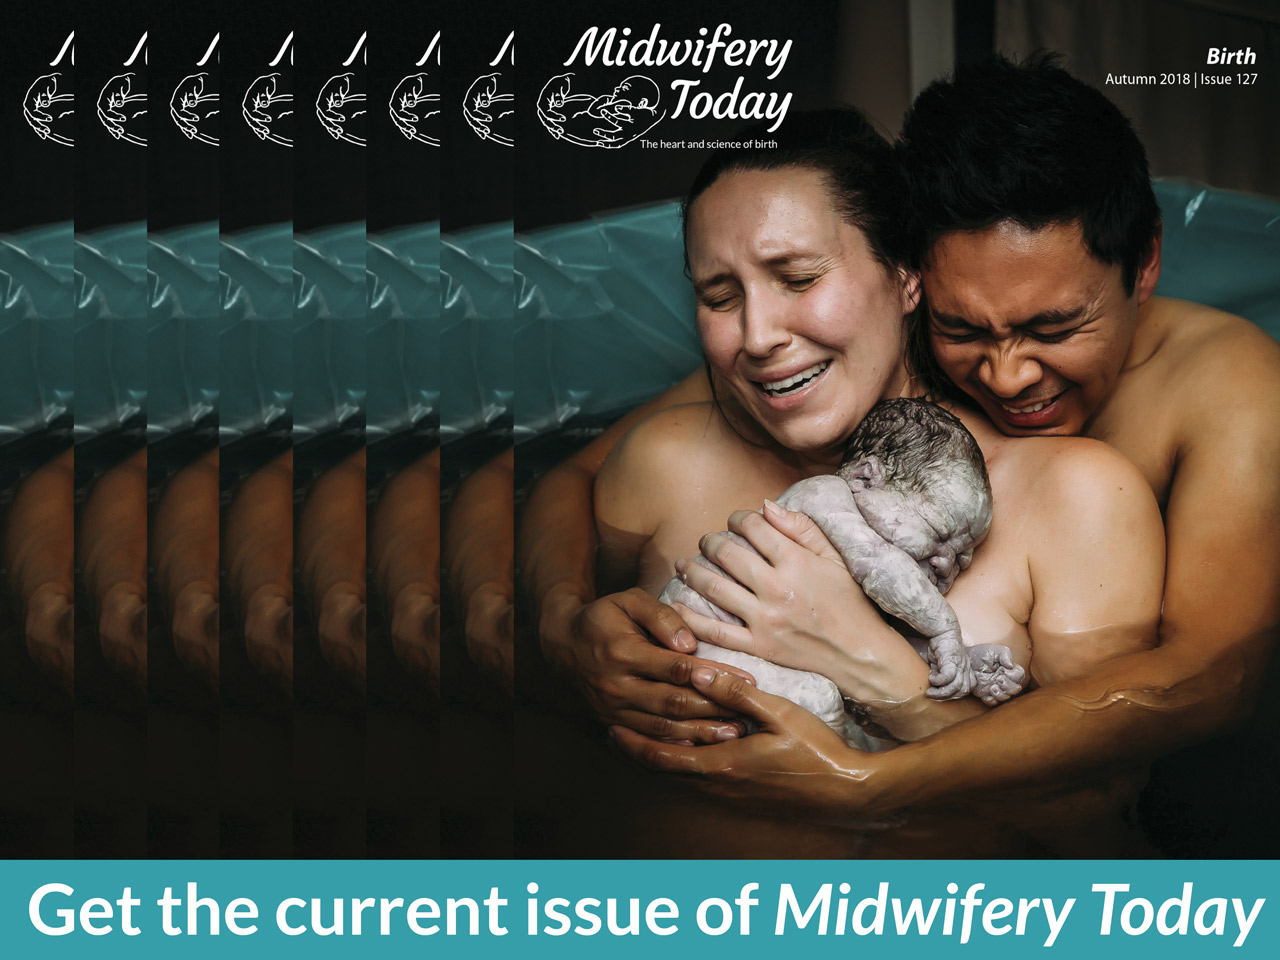 Order the current issue of Midwifery Today